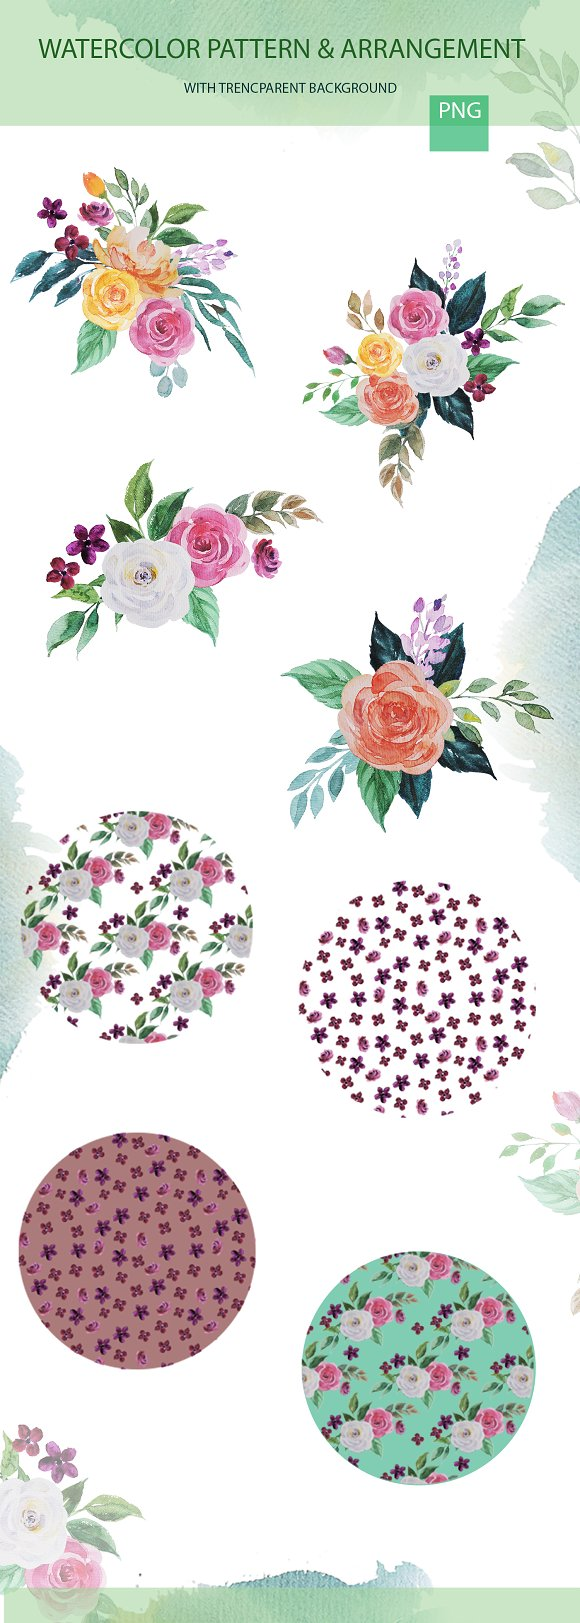 Wedding Watercolor Invitation card  in Illustrations - product preview 1